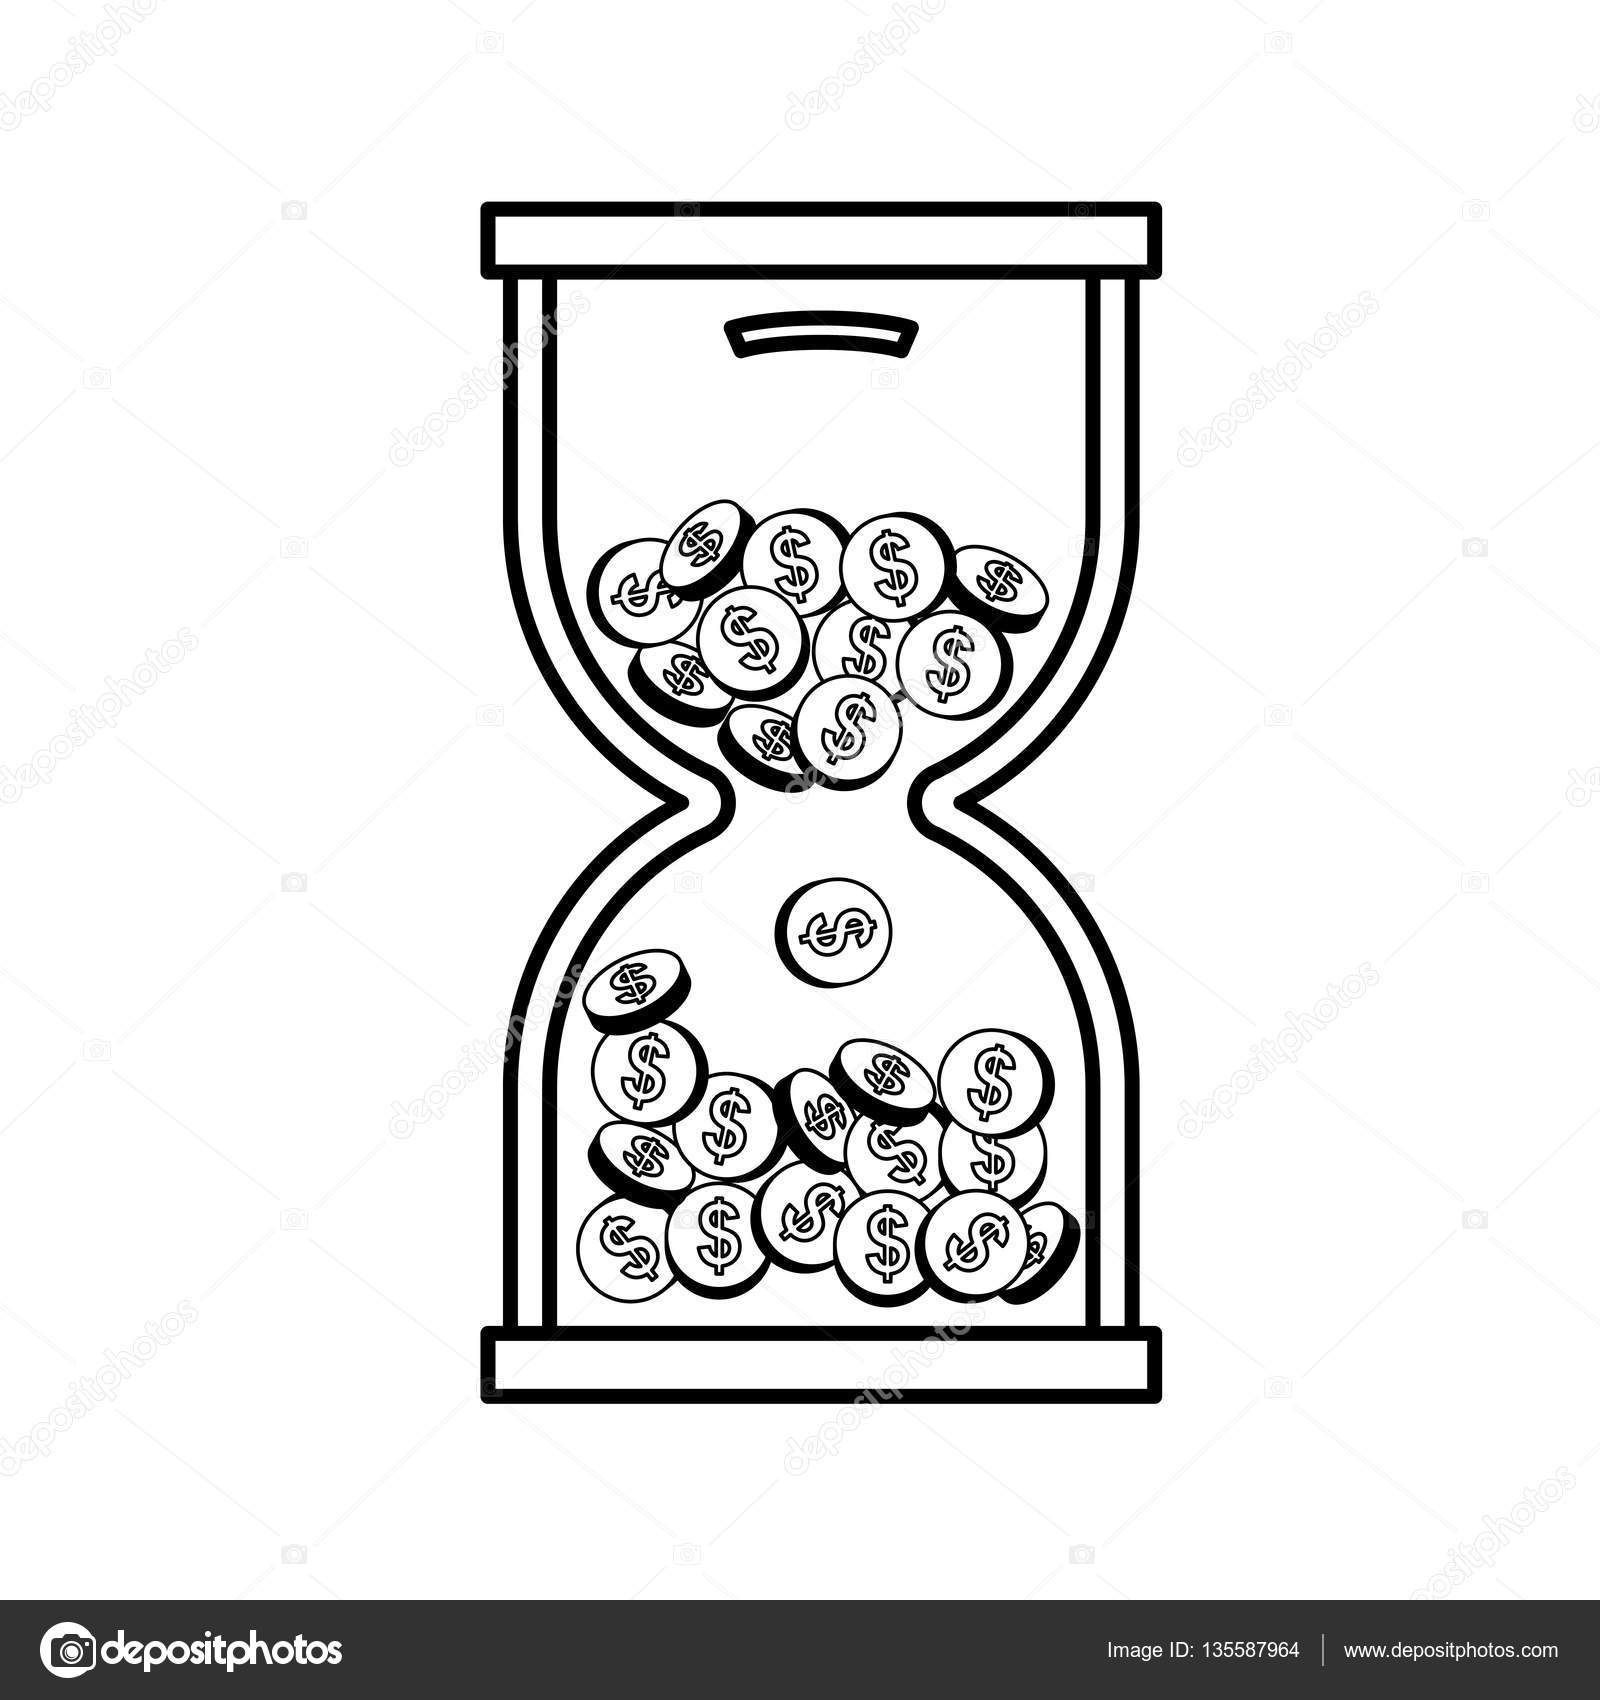 coins in time hourglass stock vector djv 135587964 Clock Hourglass Art coins in time hourglass icon vector illustration graphic design vector by djv